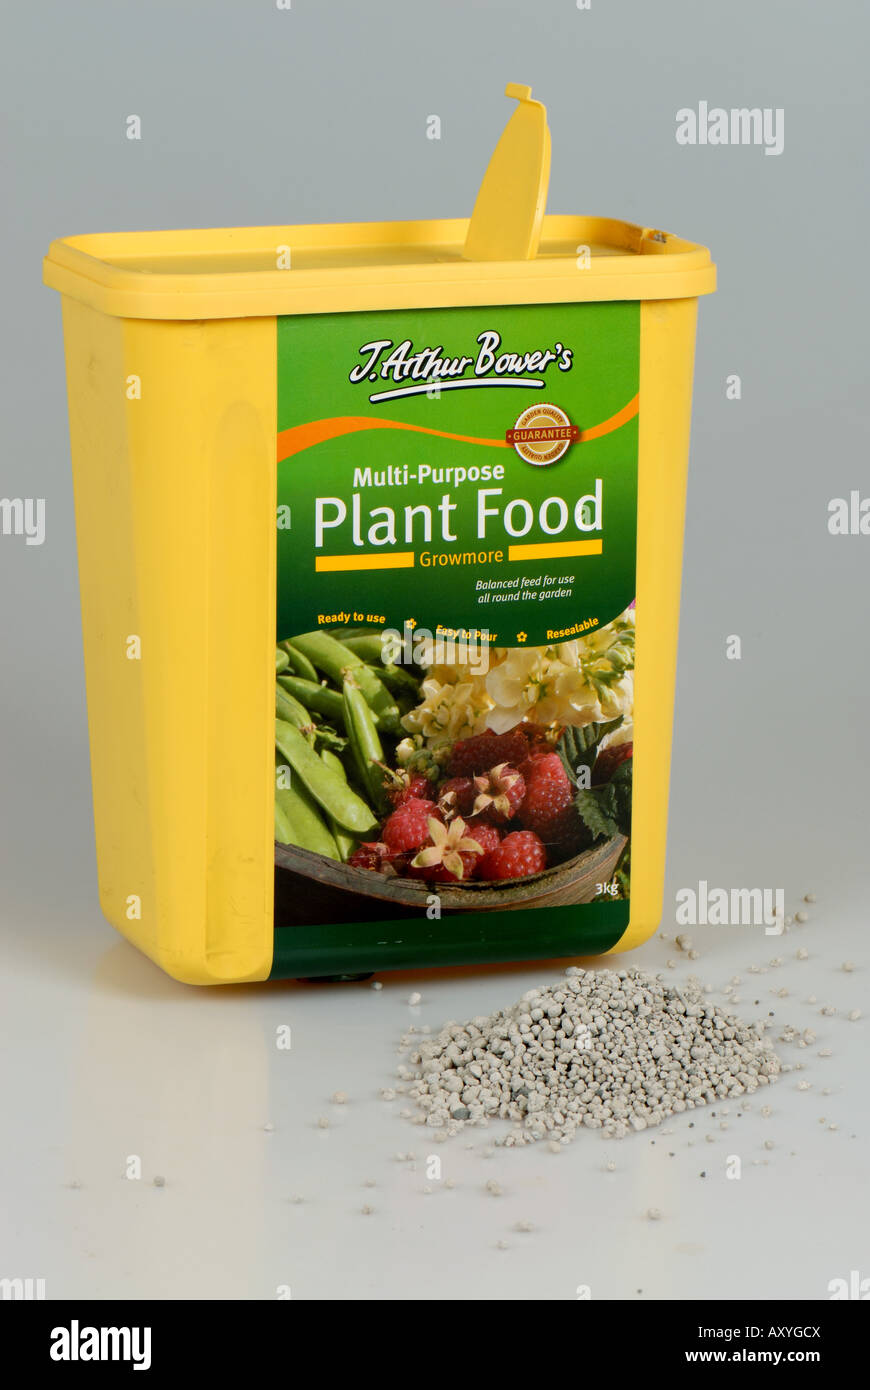 J Arthur Bowers Growmore multi purpose plant food in a plastic container for garden use - Stock Image